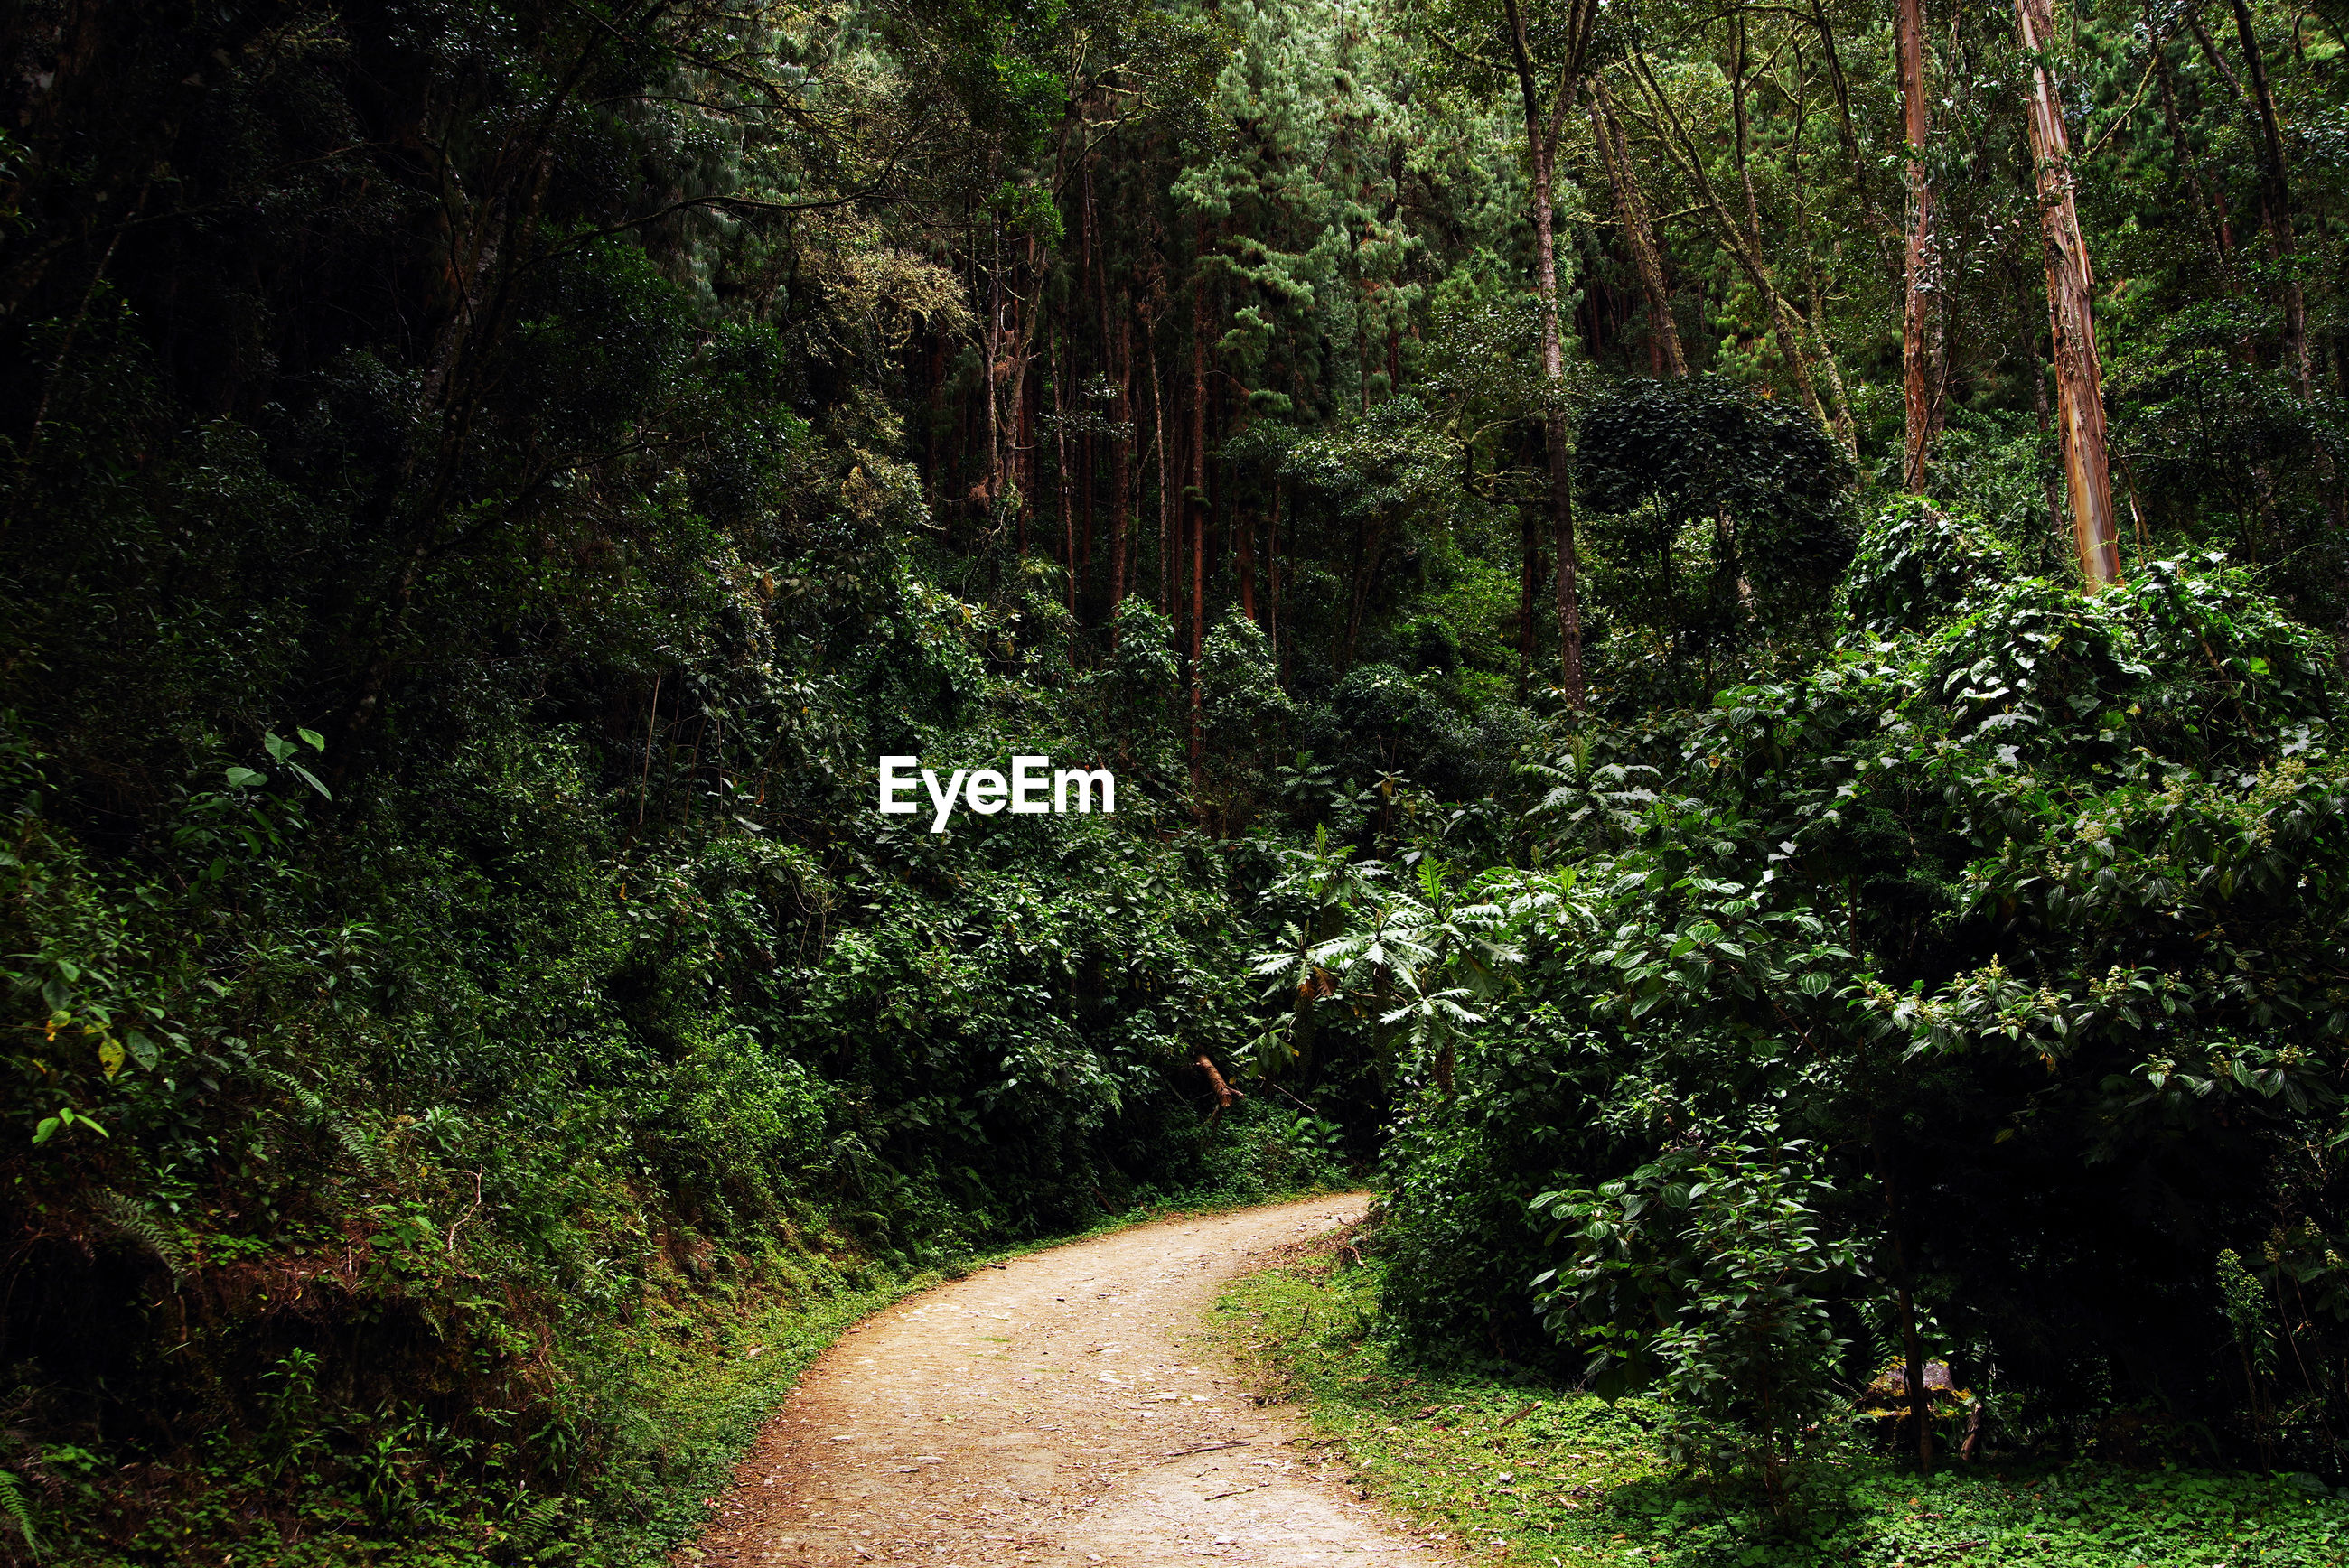 ROAD AMIDST TREES AND PLANTS IN FOREST